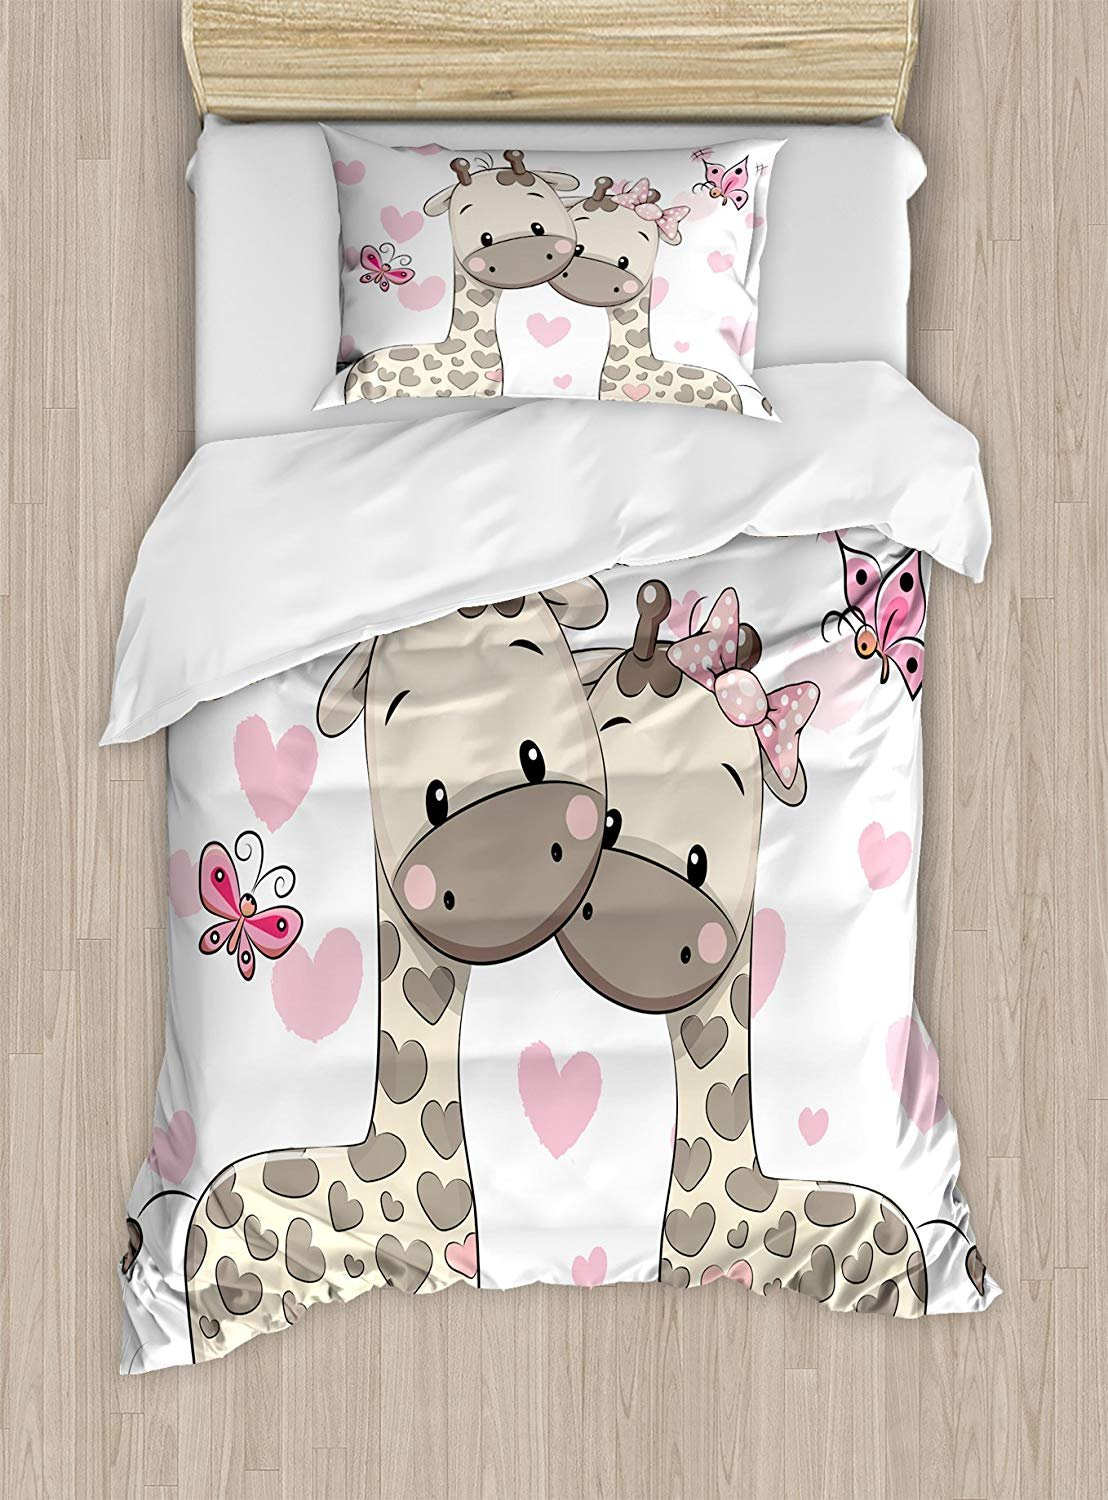 Twin XL Extra Long Bedding Set,Kids Decor Duvet Cover Set,Cute Giraffes in Pure Valentine's Love with Butterflies and Hearts Bows Art,Cosy House Collection 4 Piece Bedding Sets